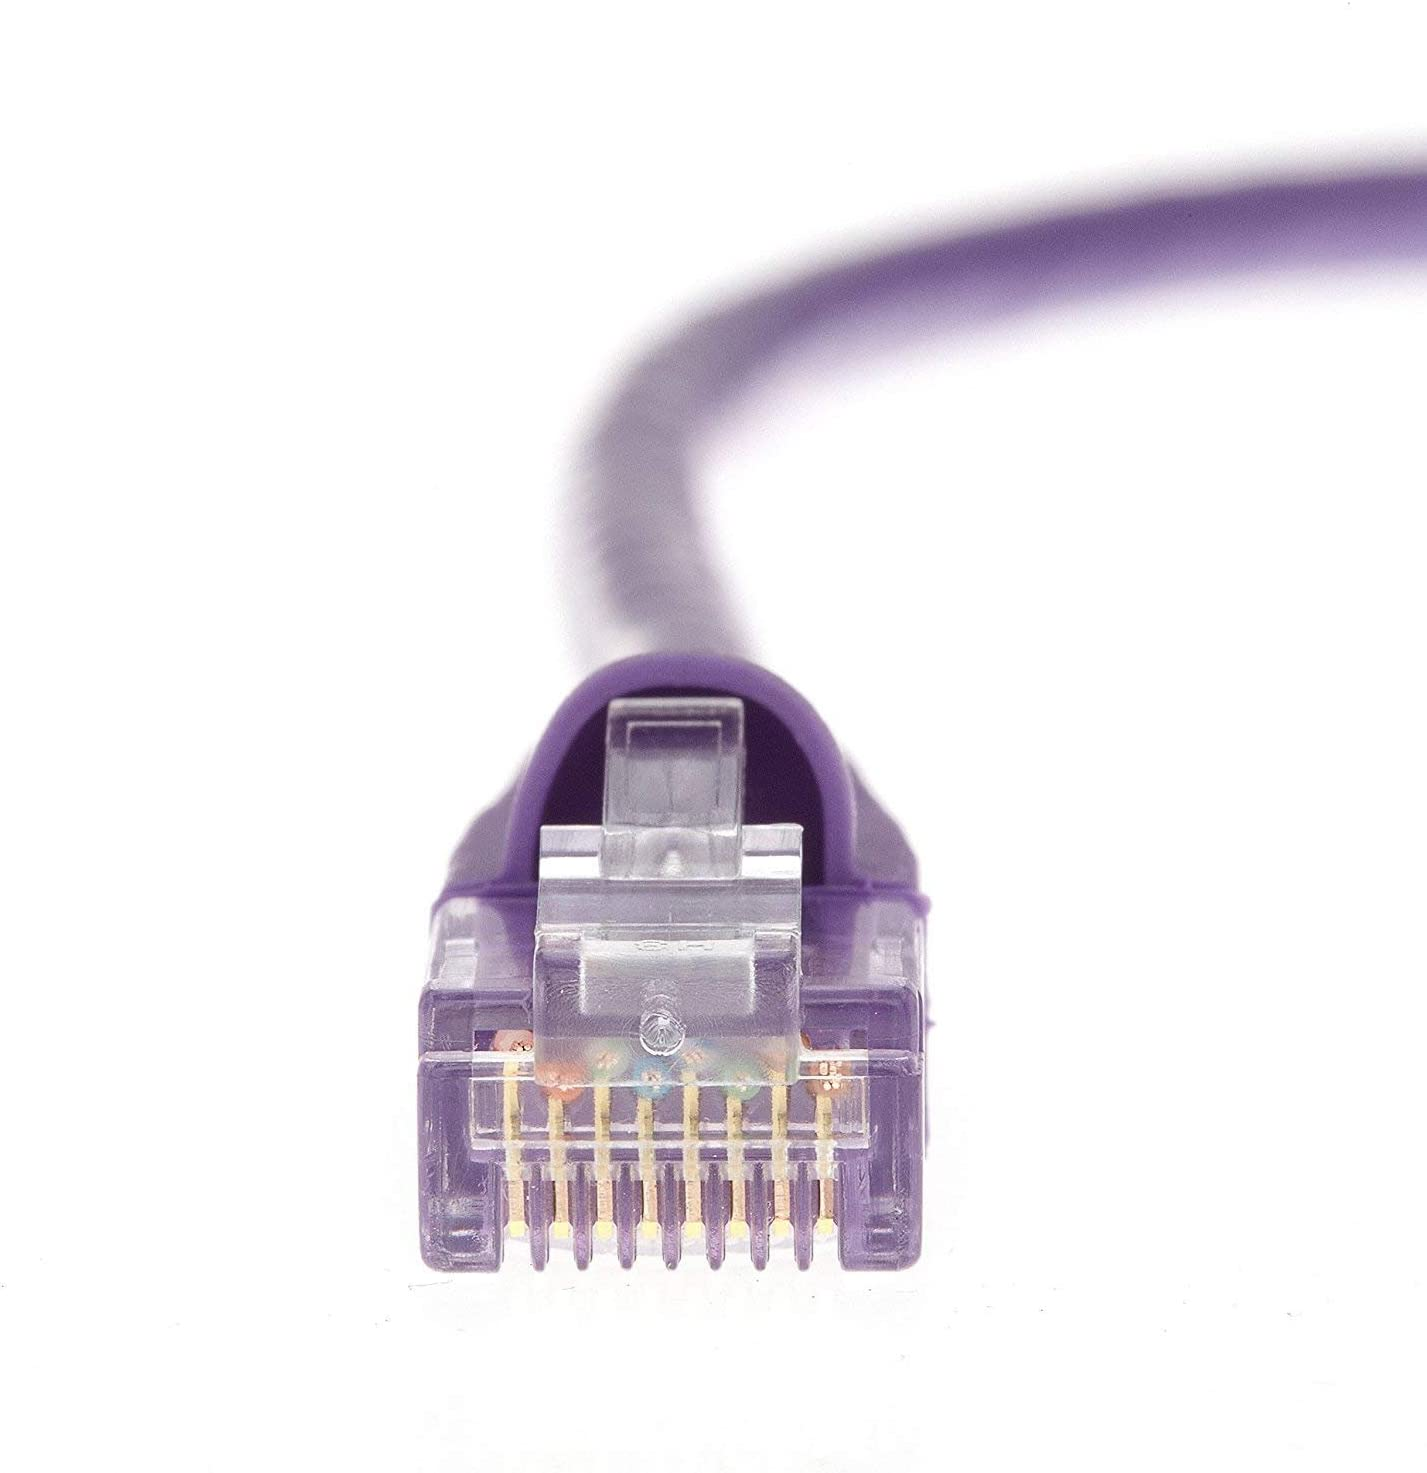 InstallerParts Ethernet Cable CAT5E Cable UTP Booted 150 FT Professional Series Black 1Gigabit//Sec Network//Internet Cable 350MHZ